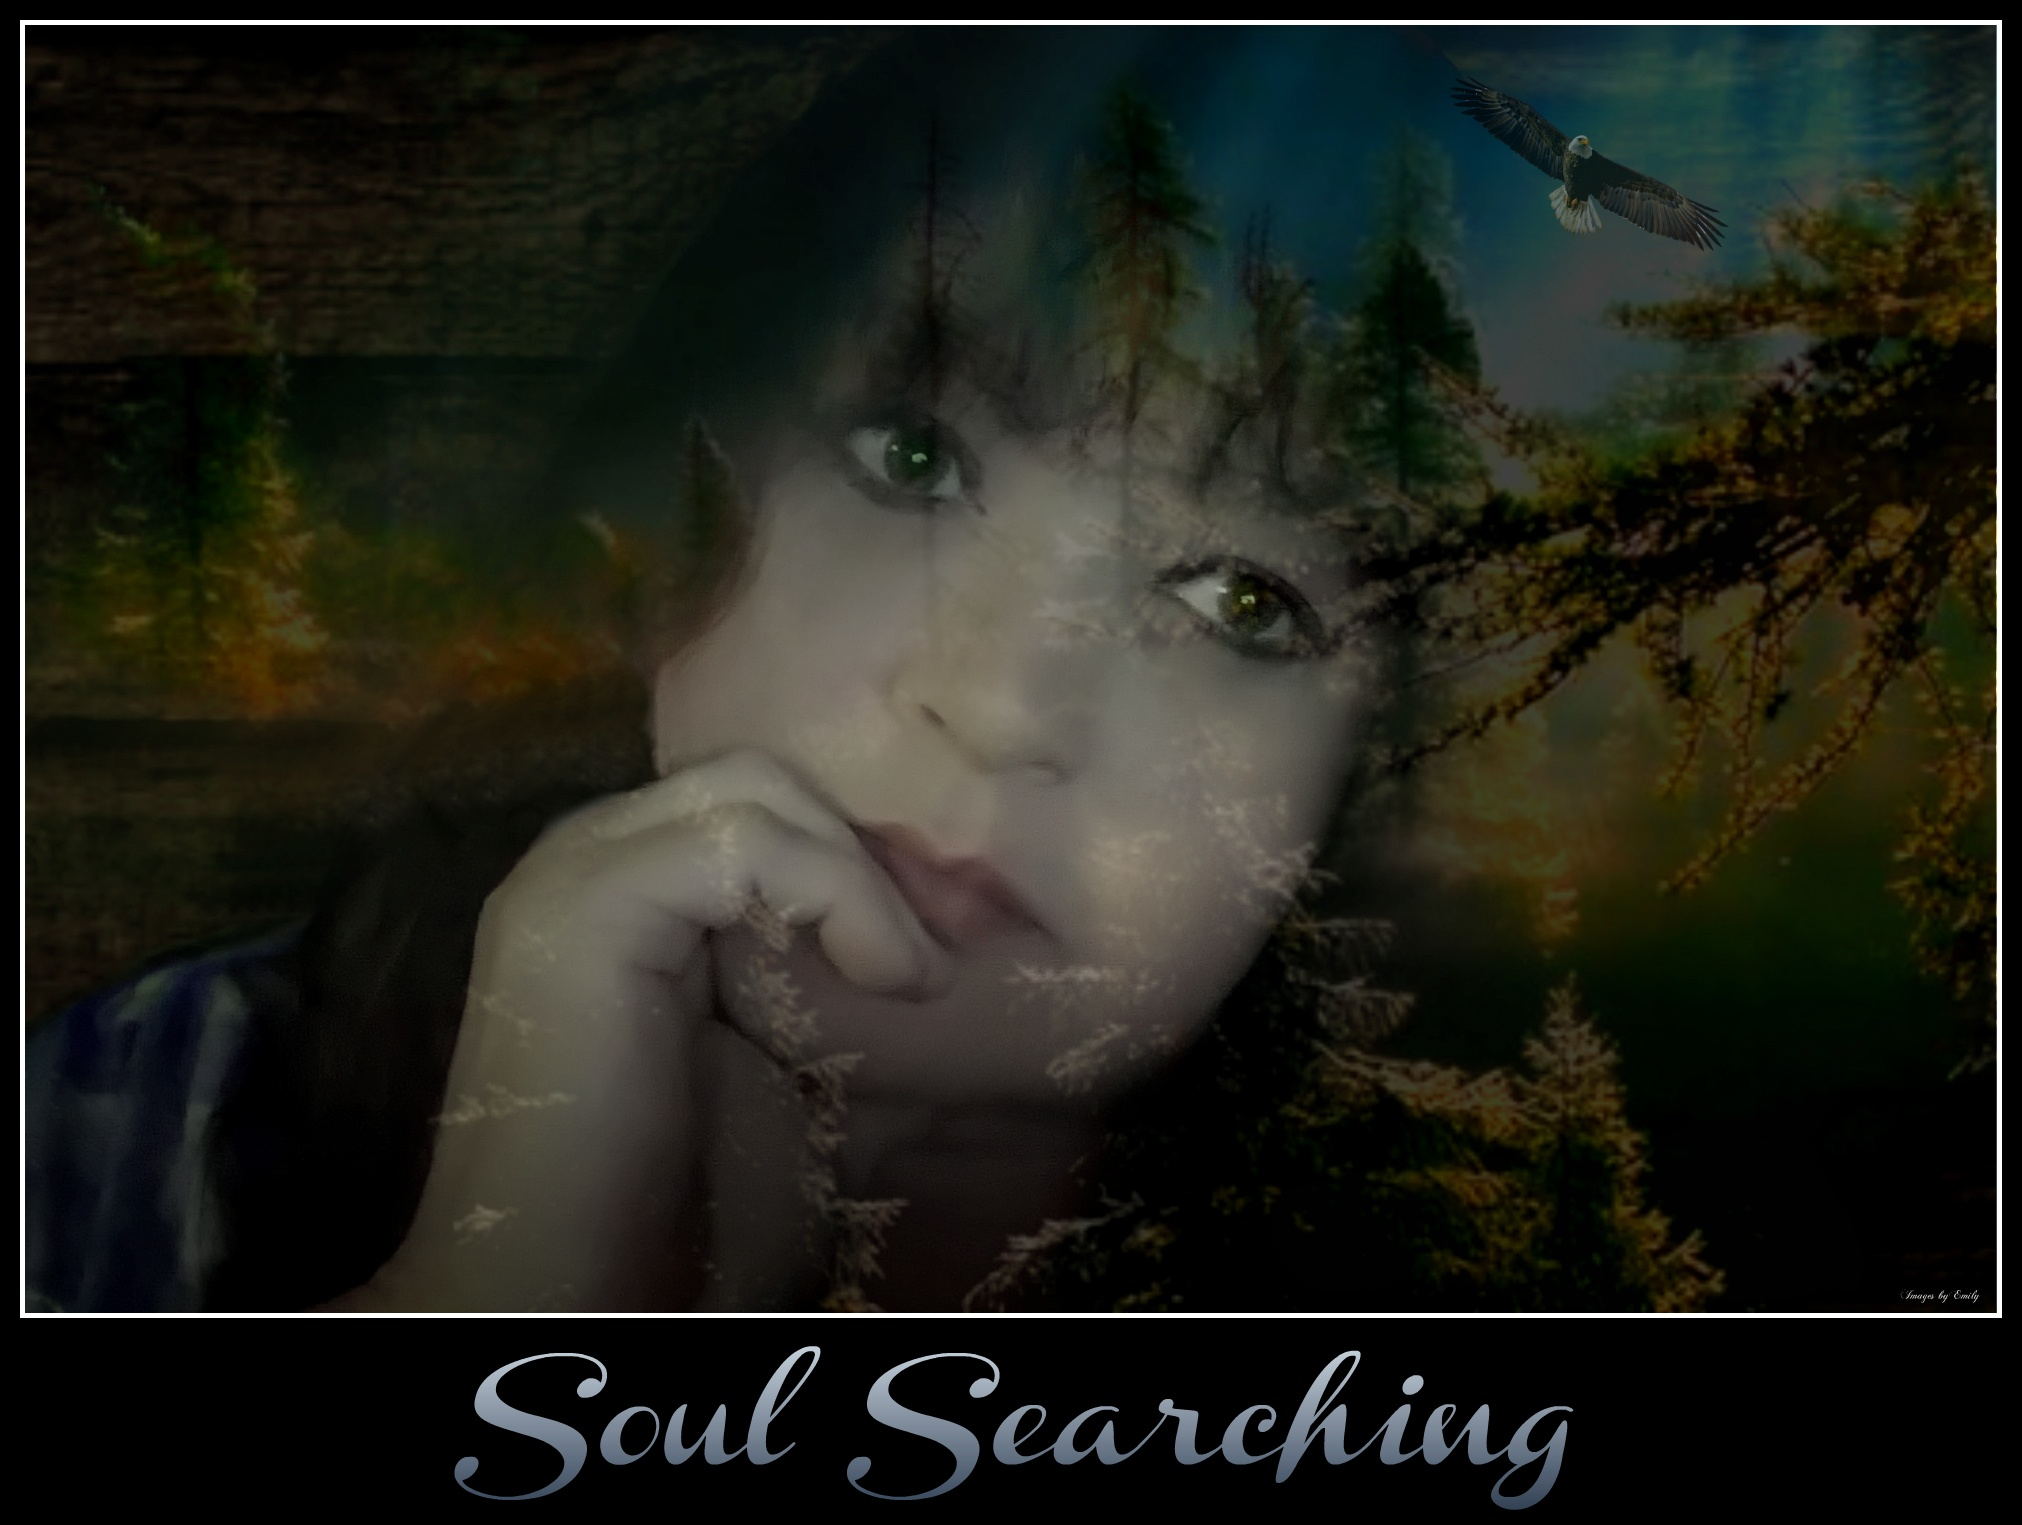 Soul Searching by Emily Grant